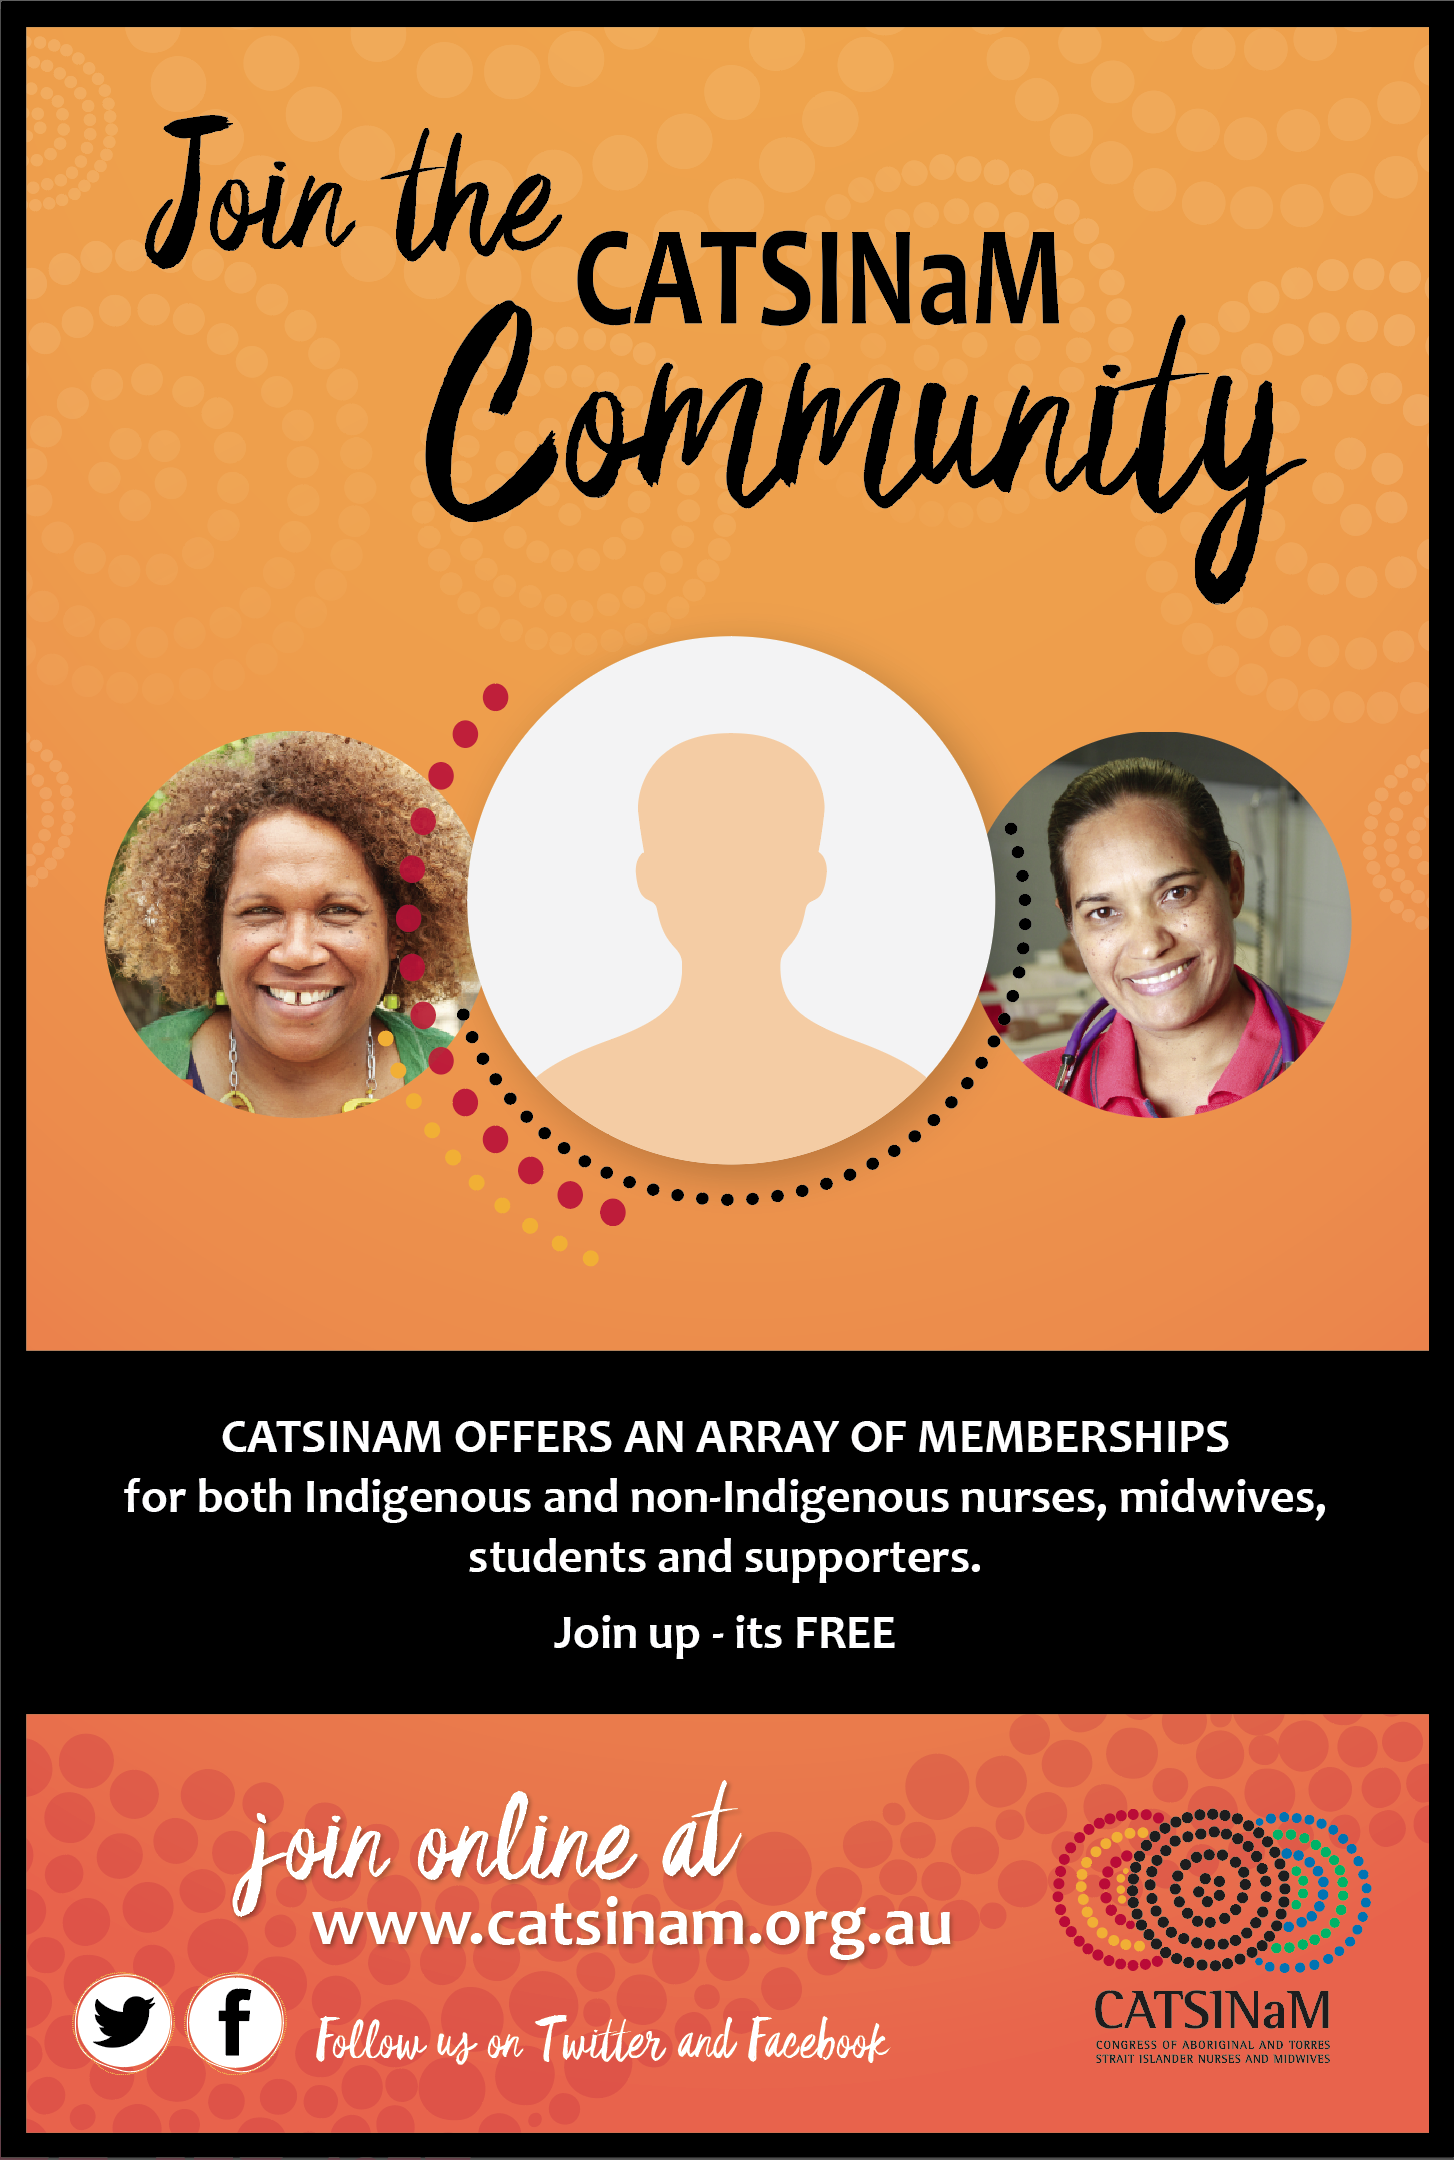 Information on joining the CATSINaM community